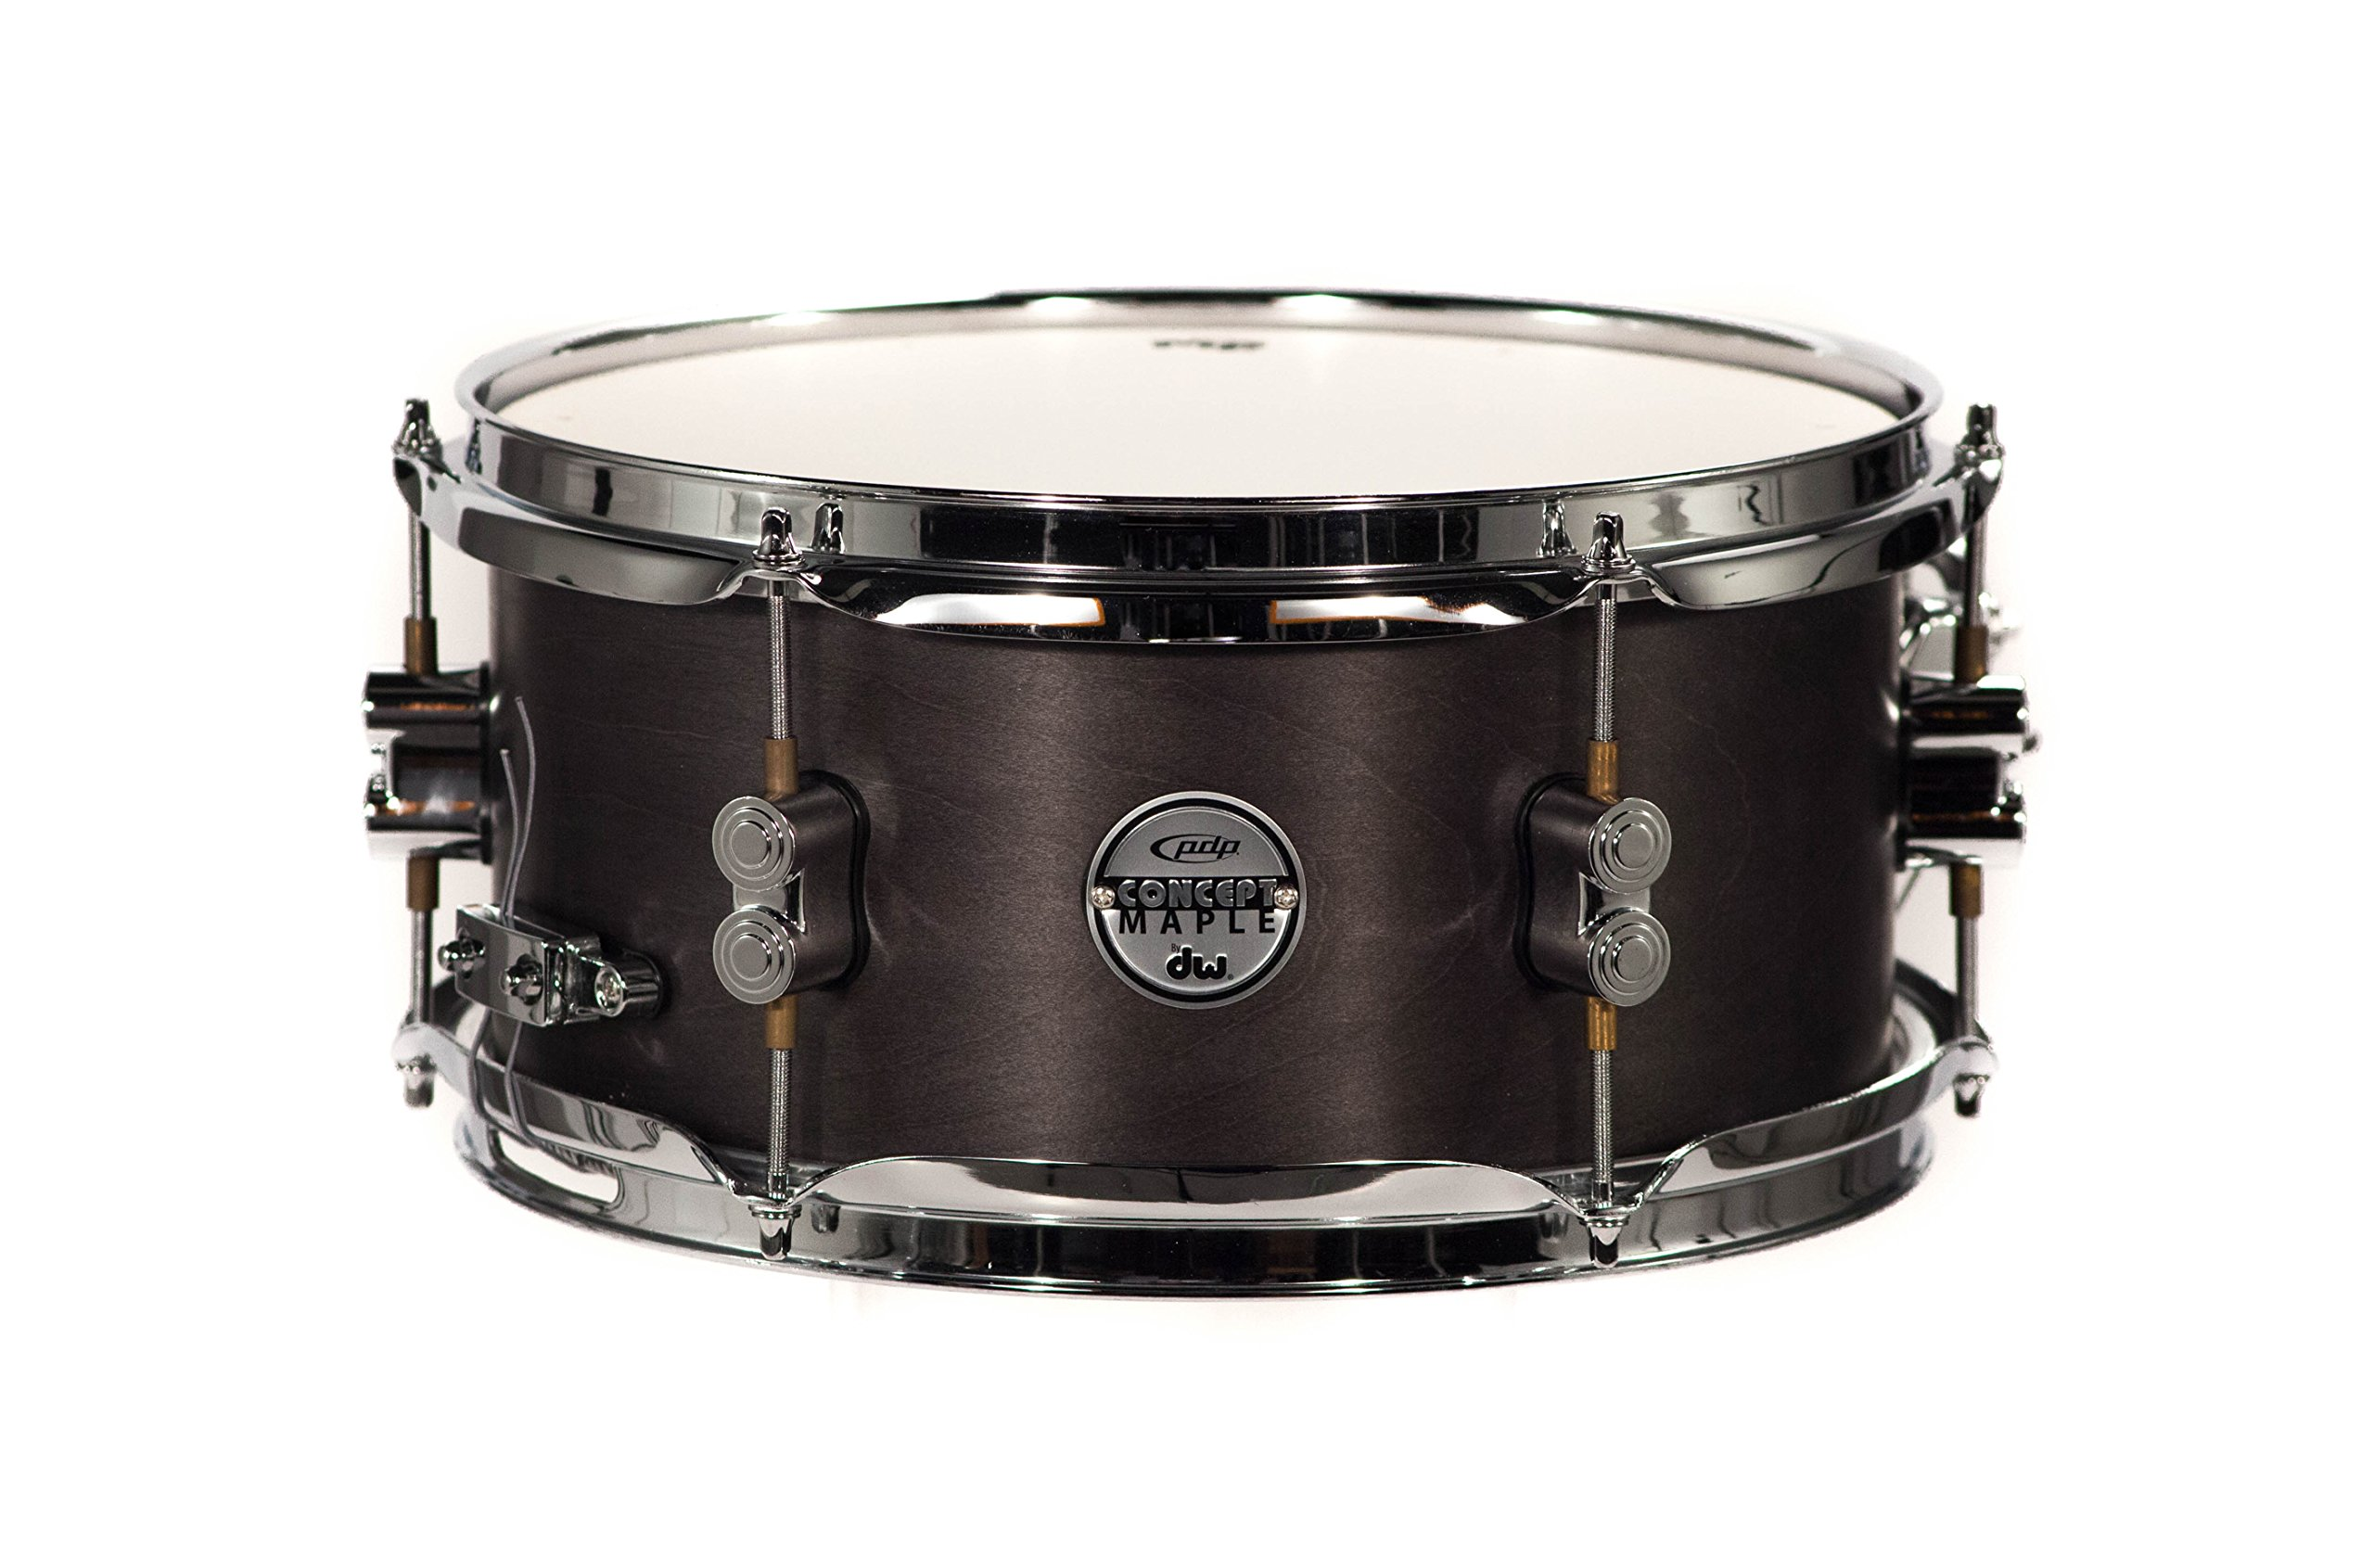 PDP By DW Black Wax Maple Snare Drum 6x12